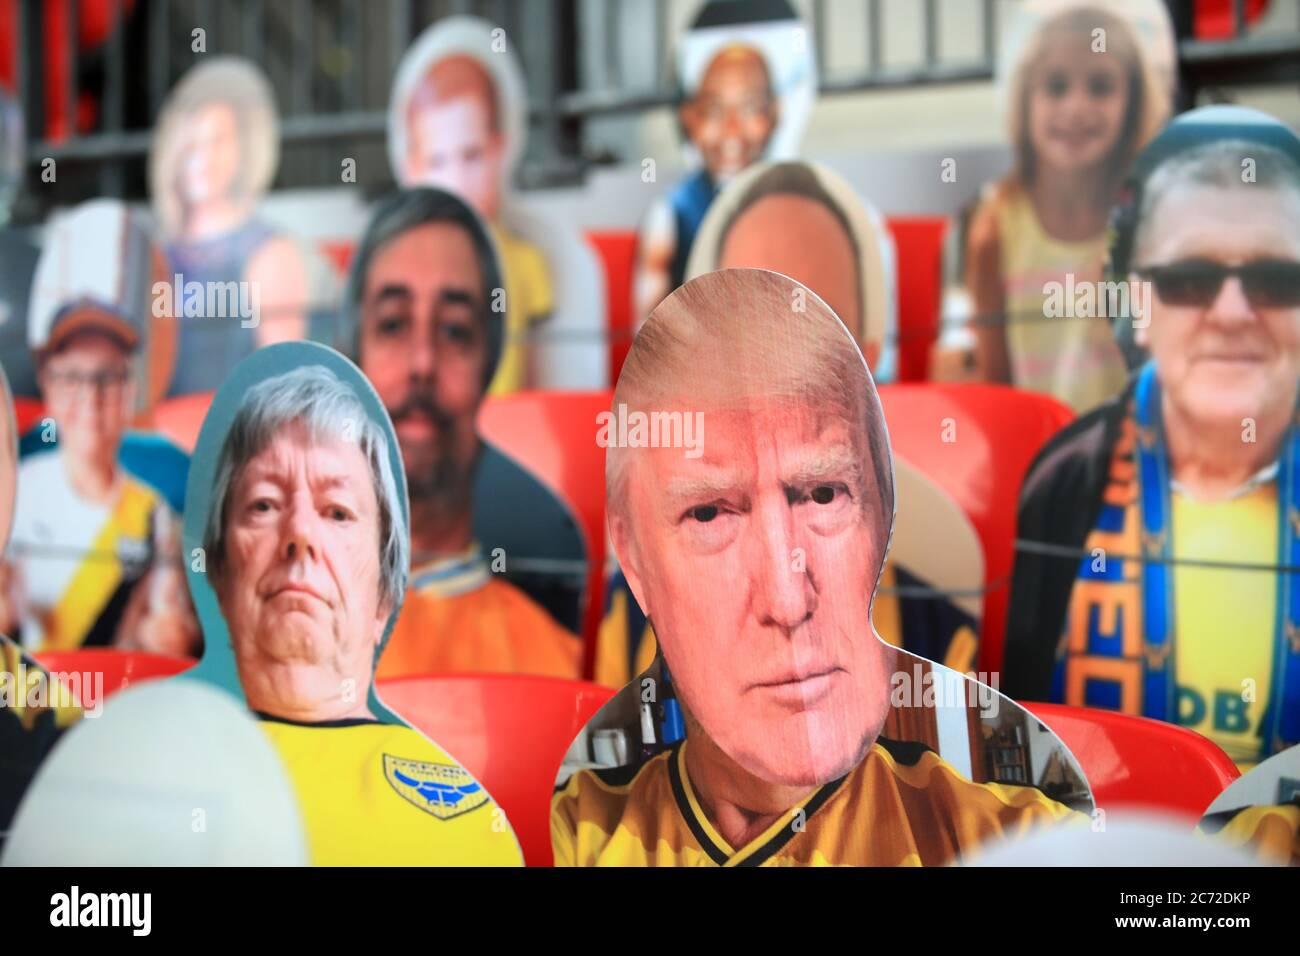 A general view of cardboard cut-out of fans in the stands including Donald Trump before the Sky Bet League One play-off final at Wembley Stadium, London. Stock Photo